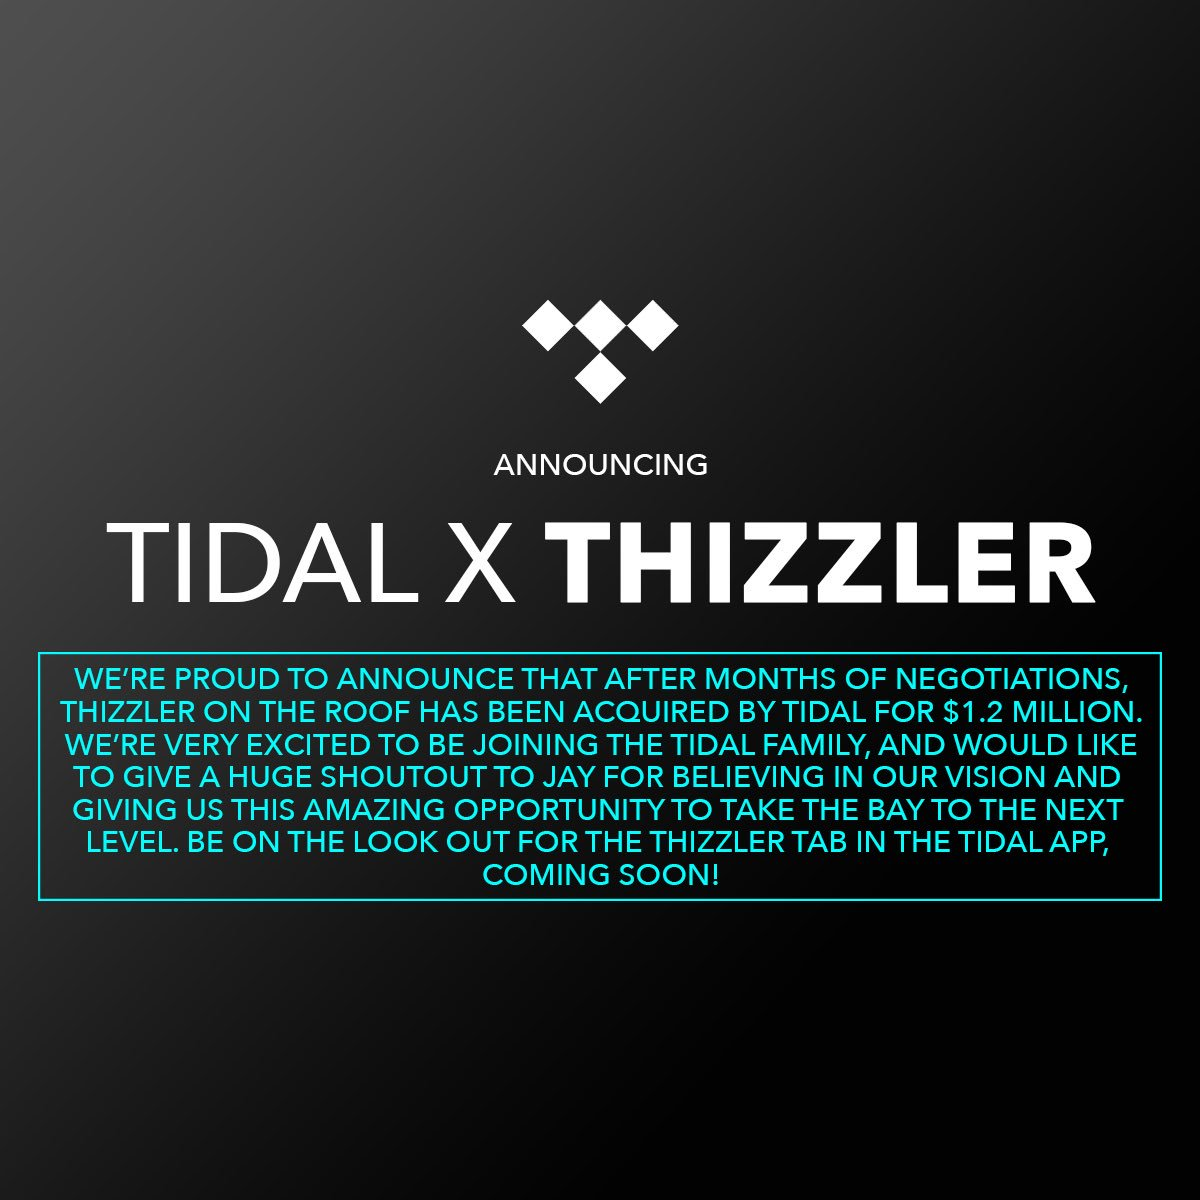 It's finally time to make this public. Excited to announce the next phase of Thizzler will be exclusively on TIDAL! https://t.co/xDNRCVy3QF